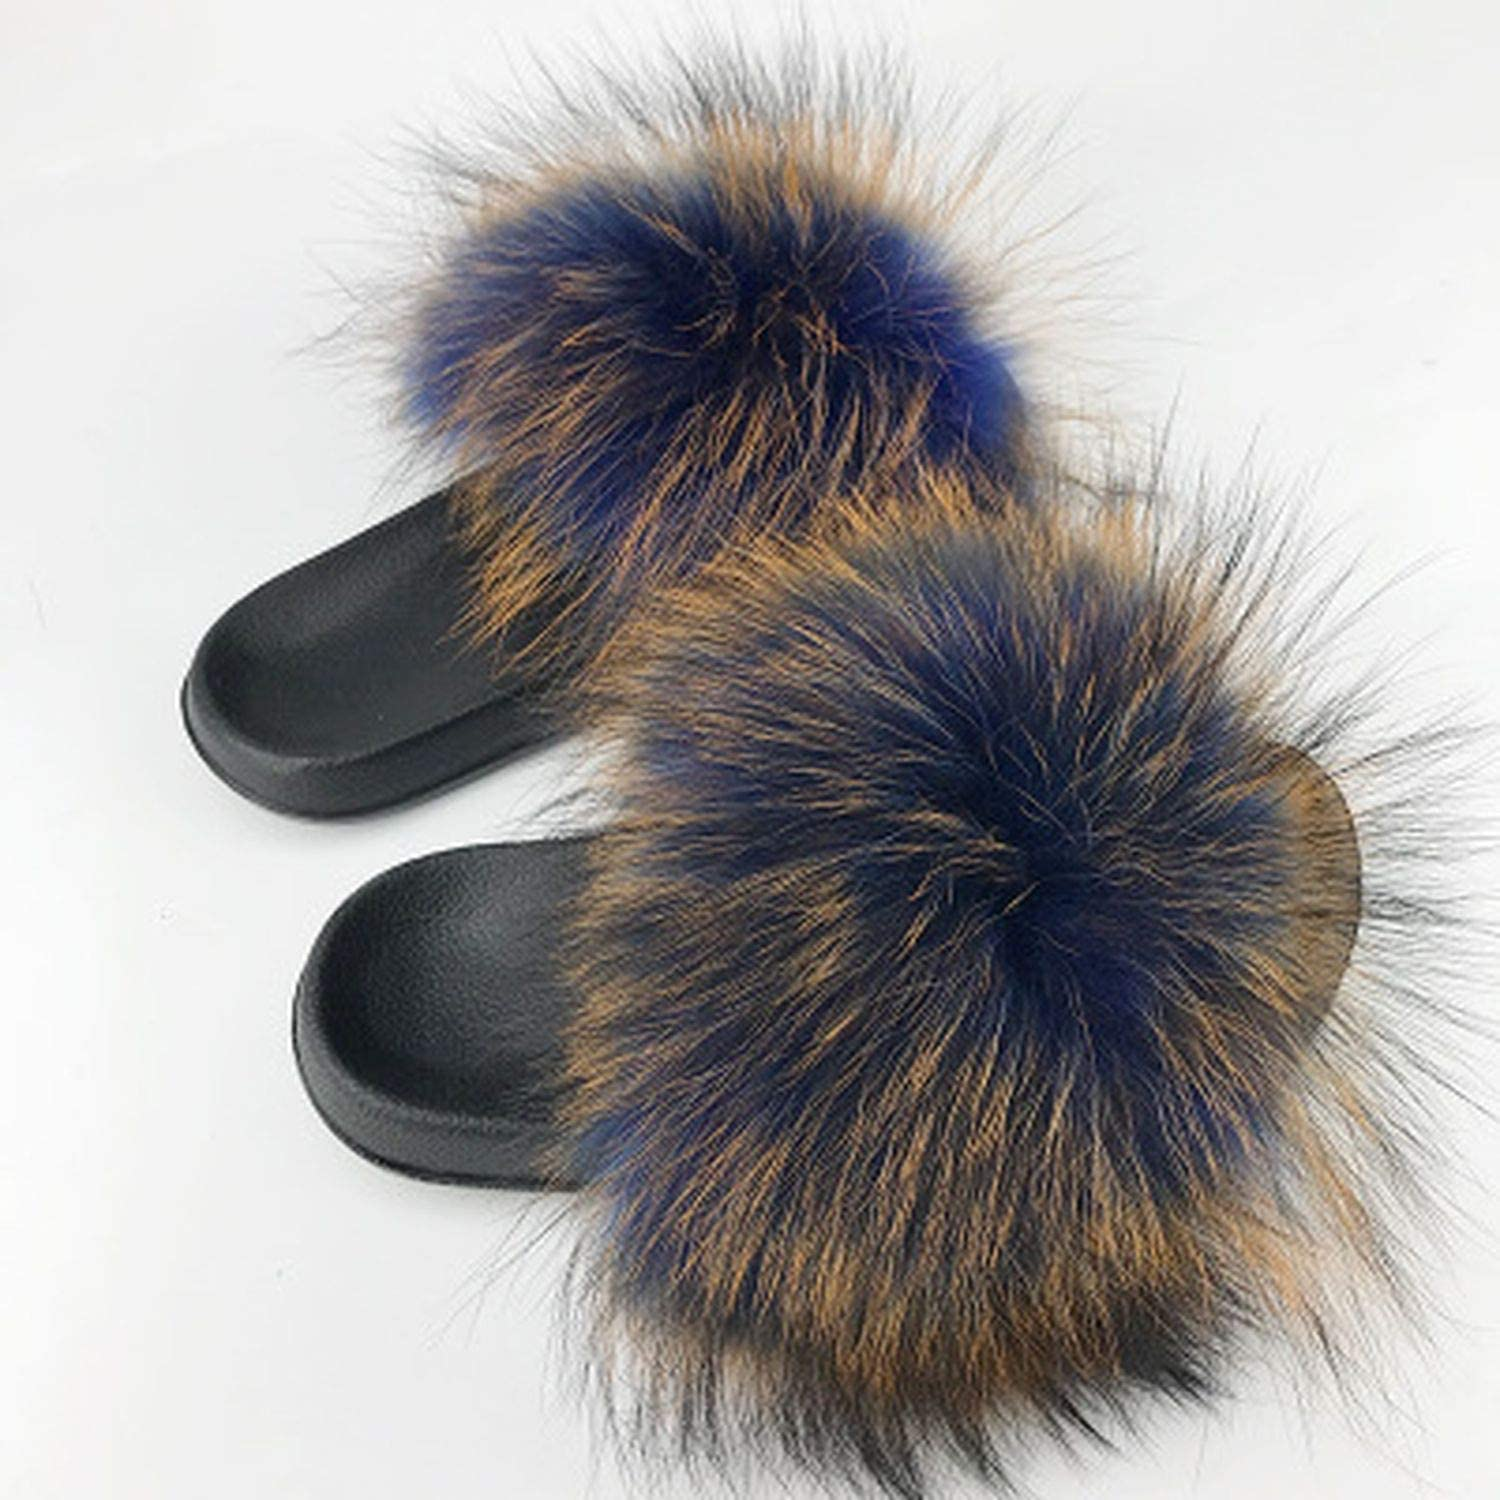 High end Fur Slippers Women Sliders Casual Fox Hair Flat Fluffy Home Summer Big Size 45 Furry Flip Flops shoes Wholesale